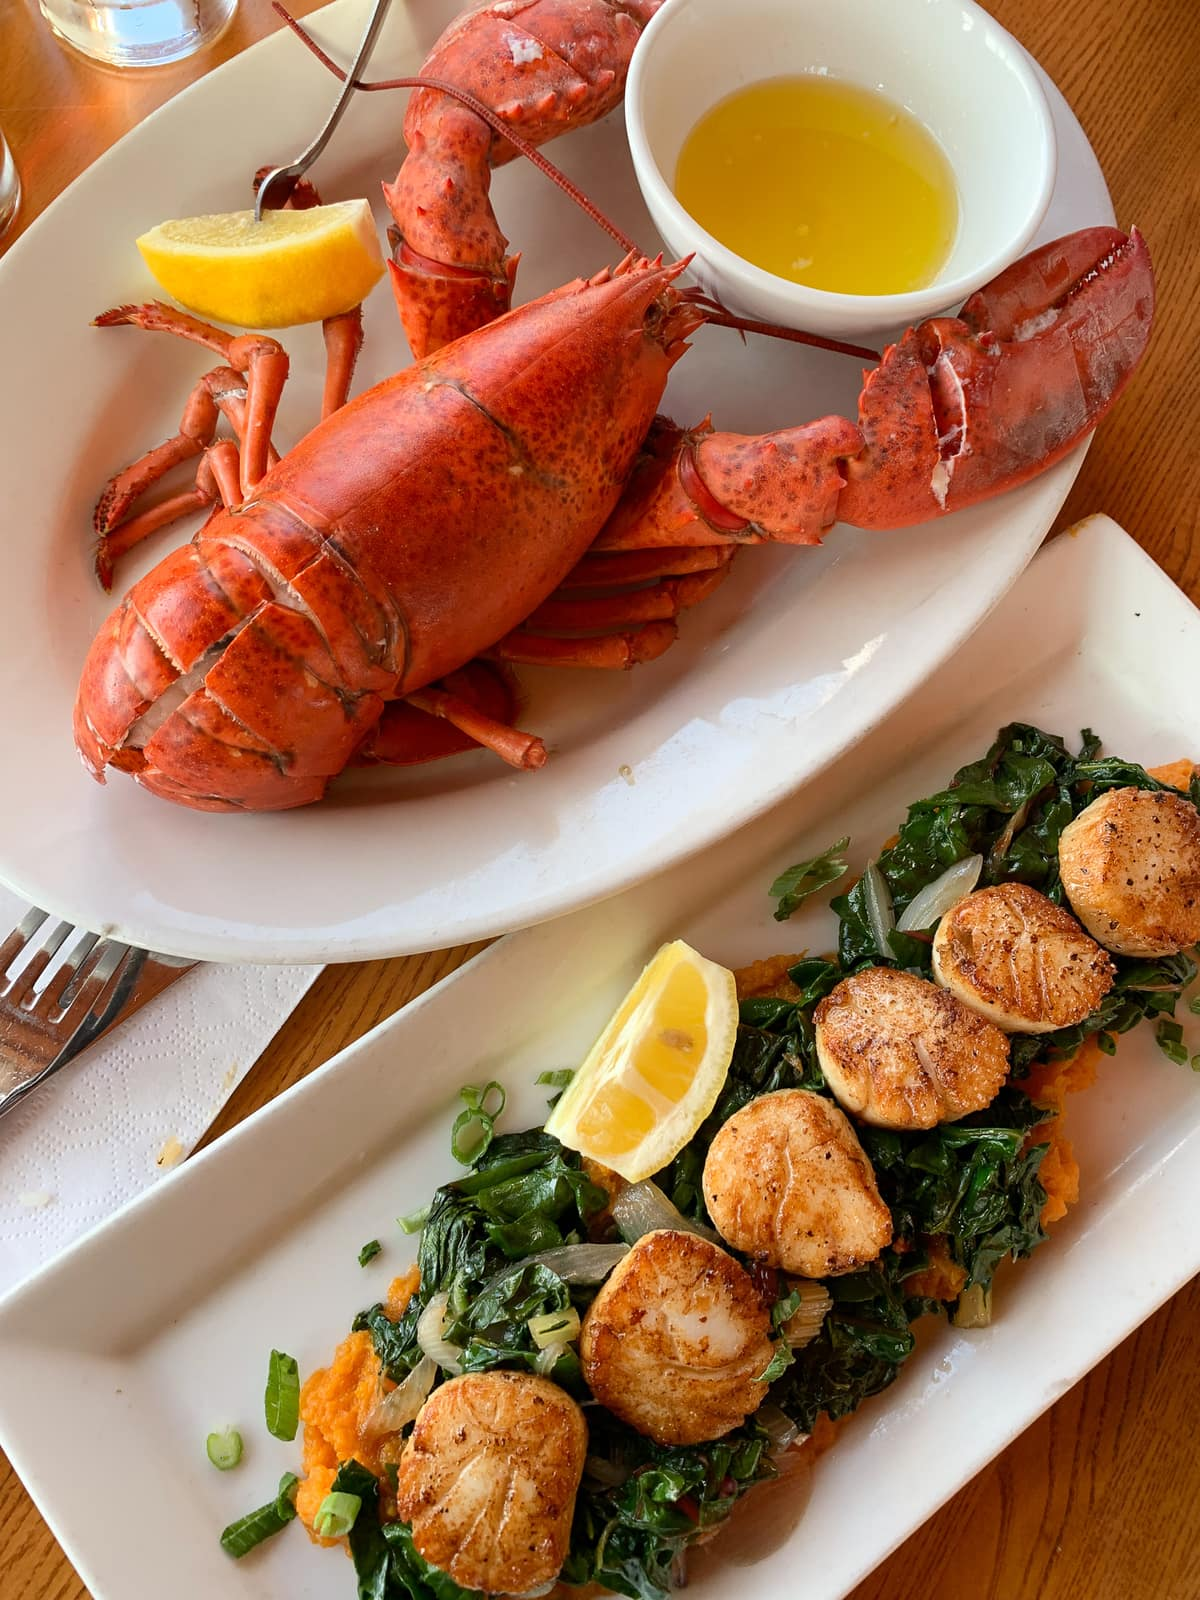 Overhead shot of lobster and scallops atop a bed of greens